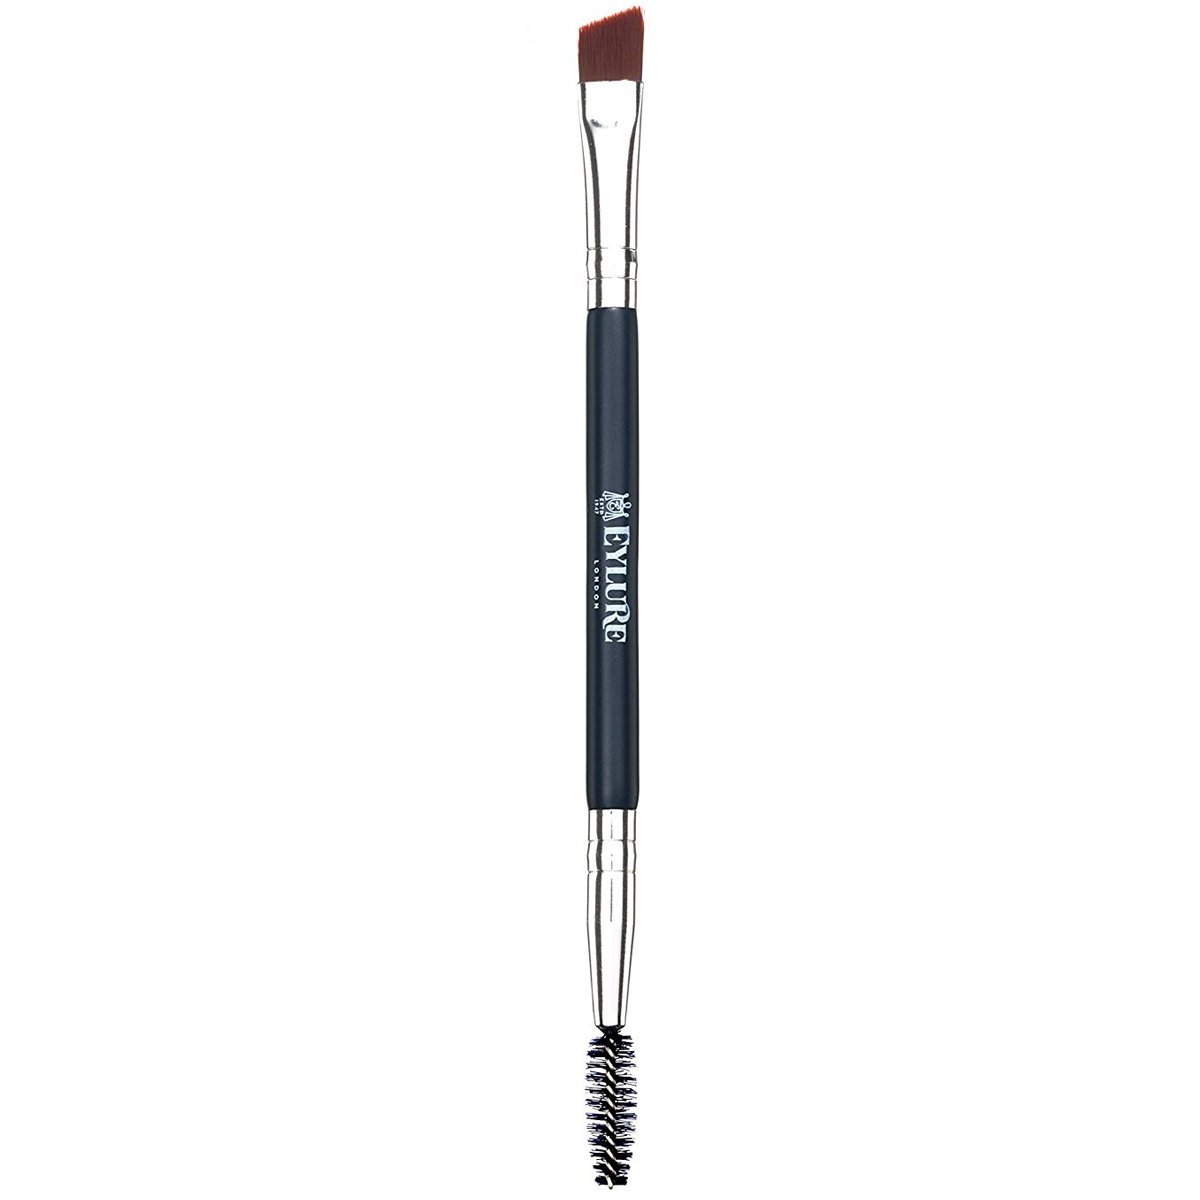 Eylure Brow Duo Implement - Double Ended Brush & Wand